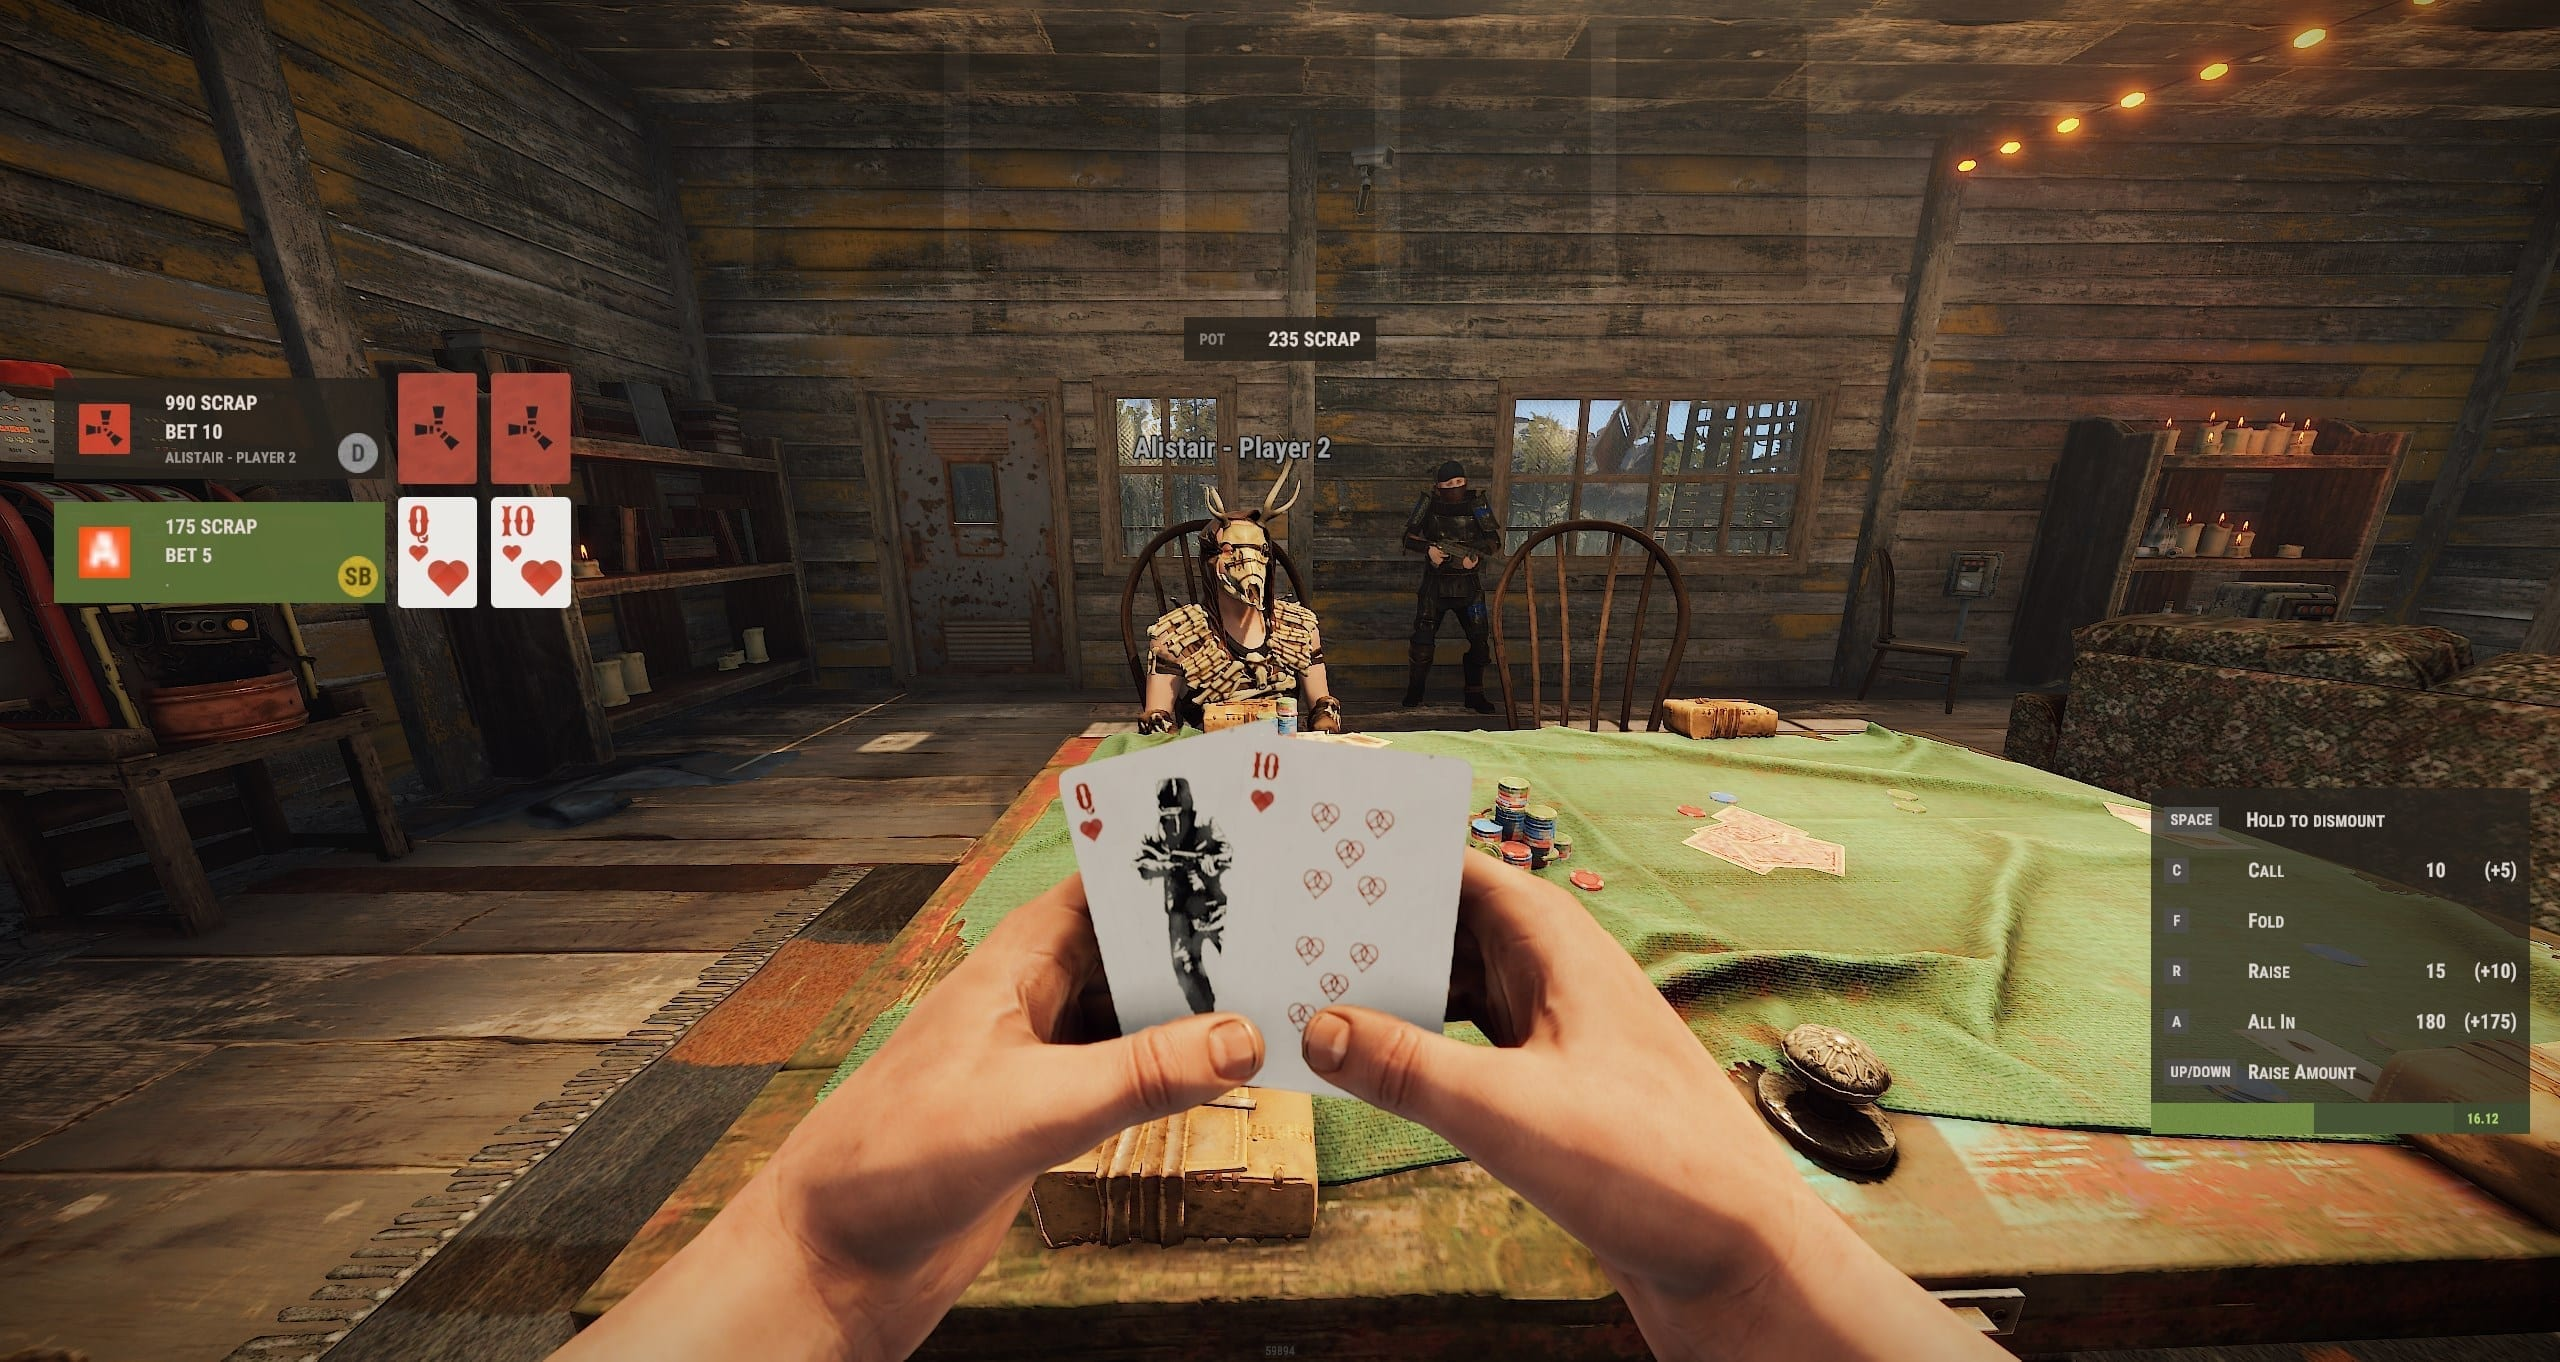 Poker Is Officially Coming To Rust